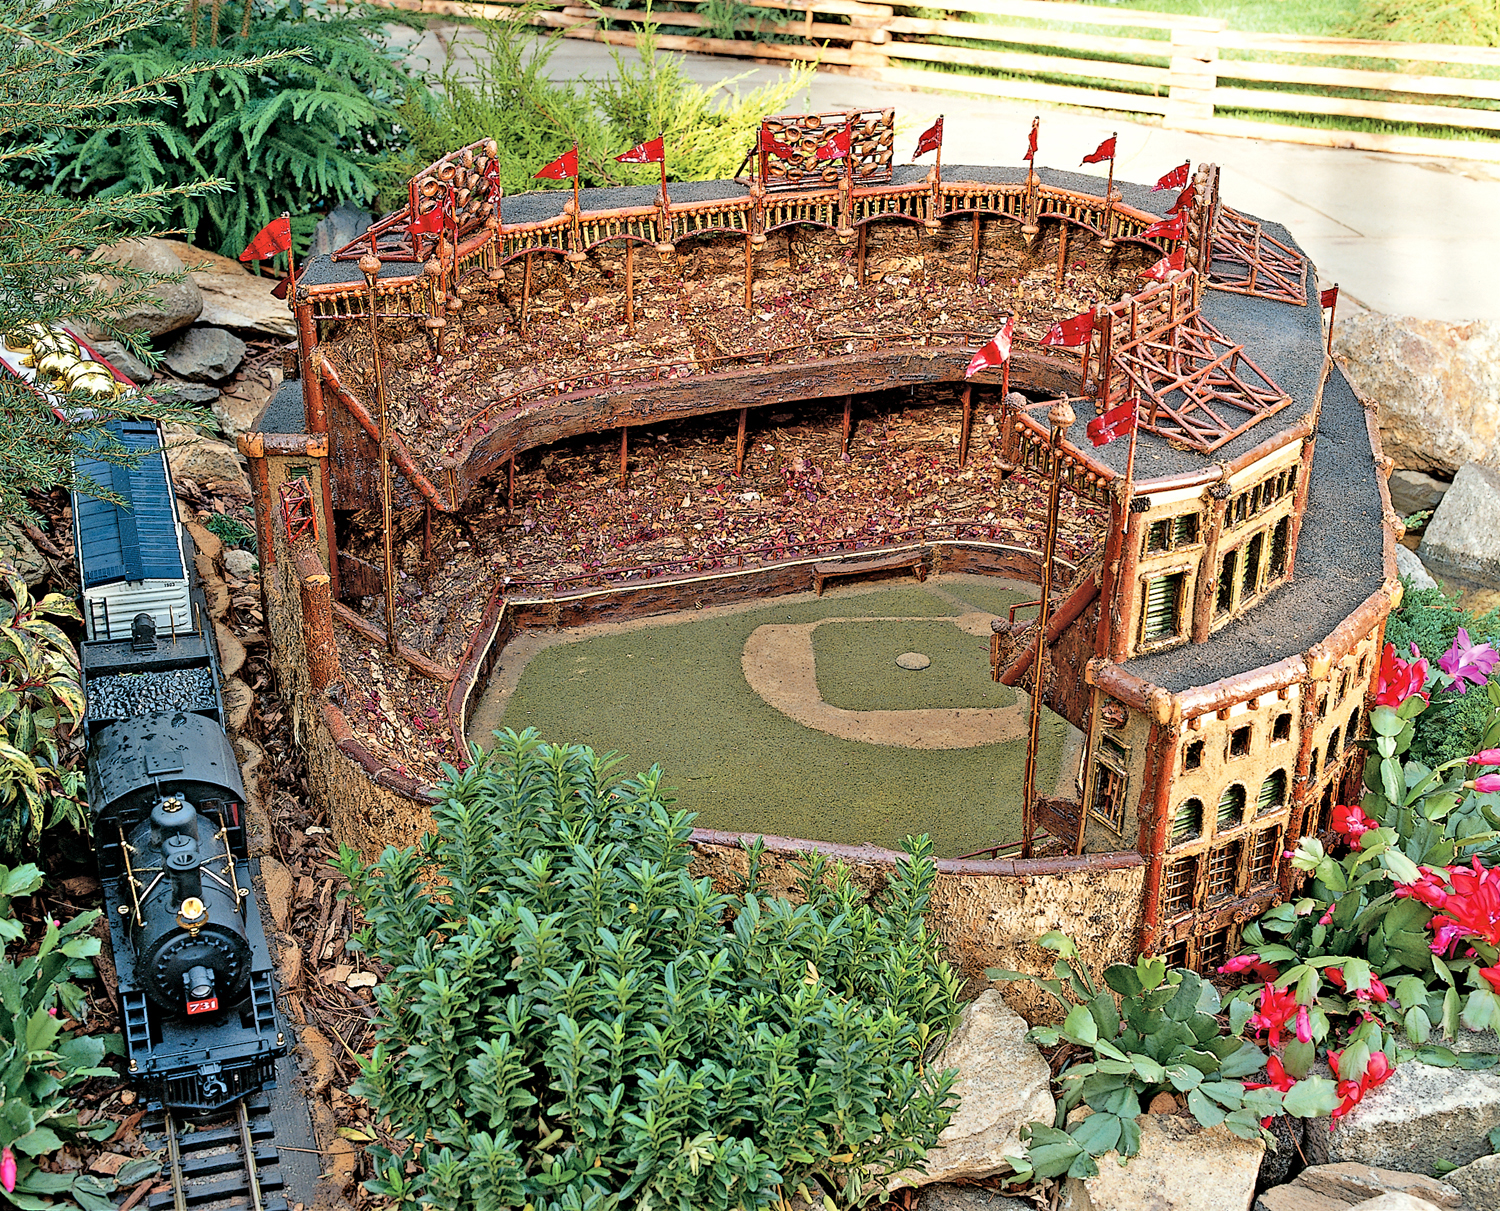 The new york botanical garden for New york botanical gardens train show